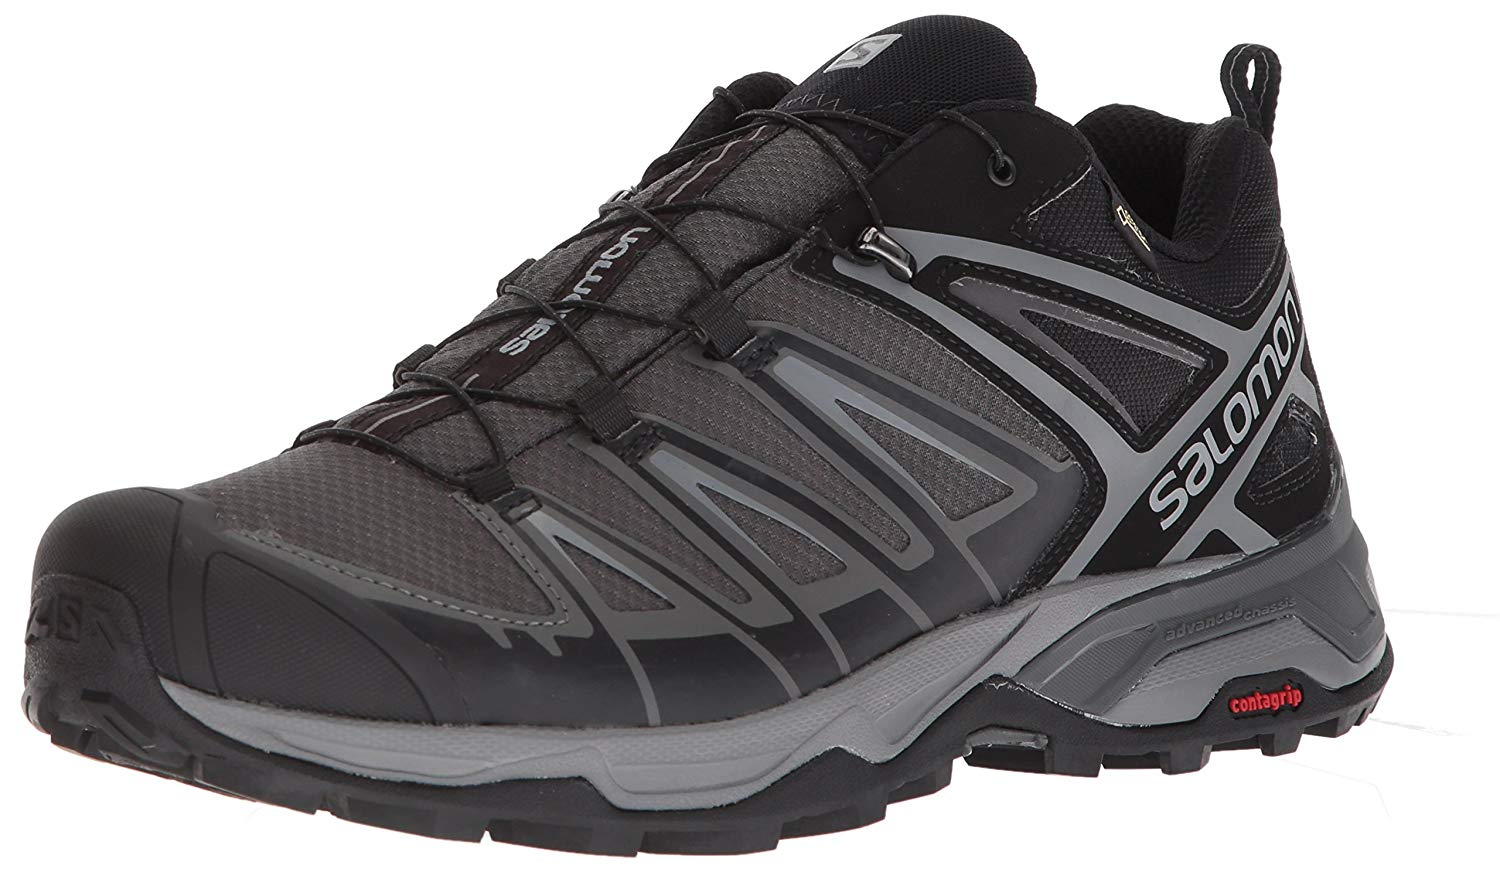 Zapatillas Salomon X Ultra 3 GTX Negro/Gris